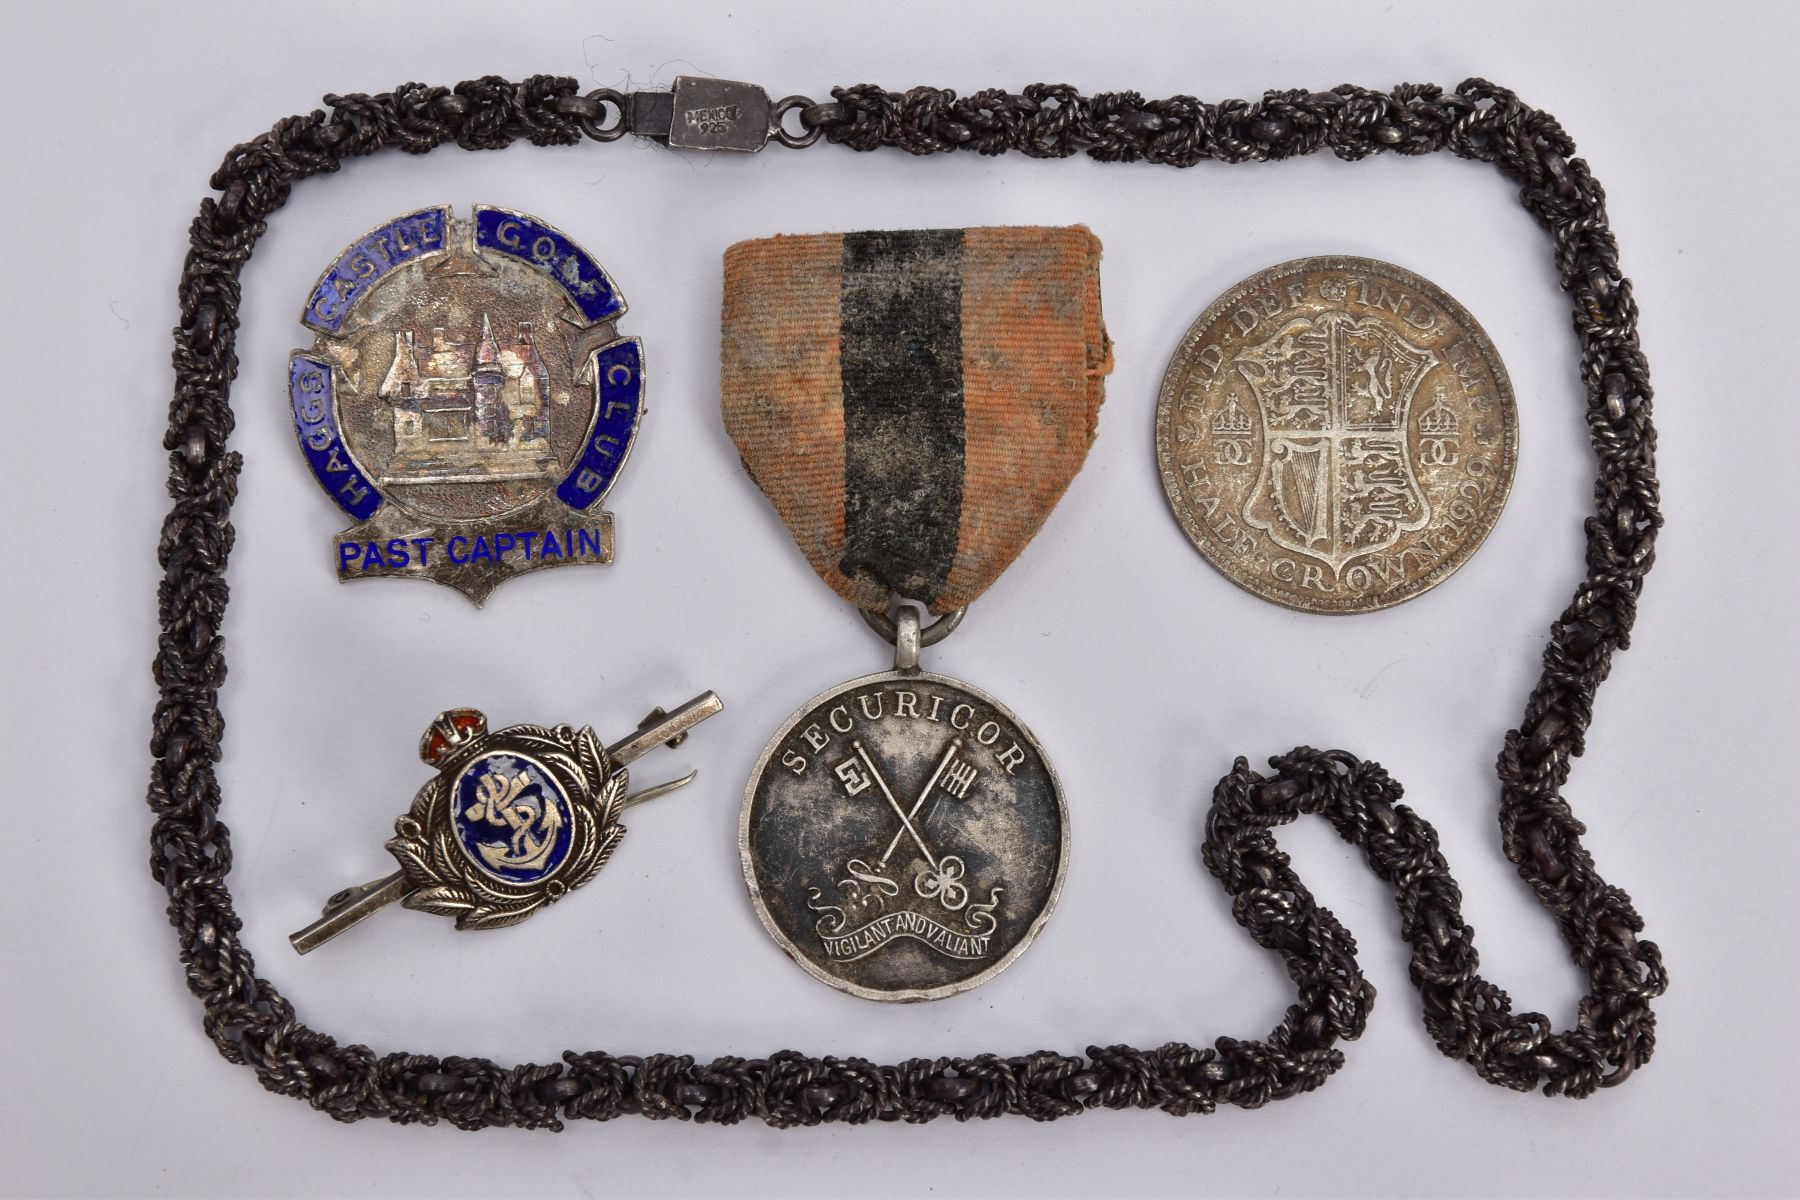 A STAMPED MEXICO 925 NECK CHAIN, tarnished, Haggs Castle Gold Club past captain badge (hallmarked)